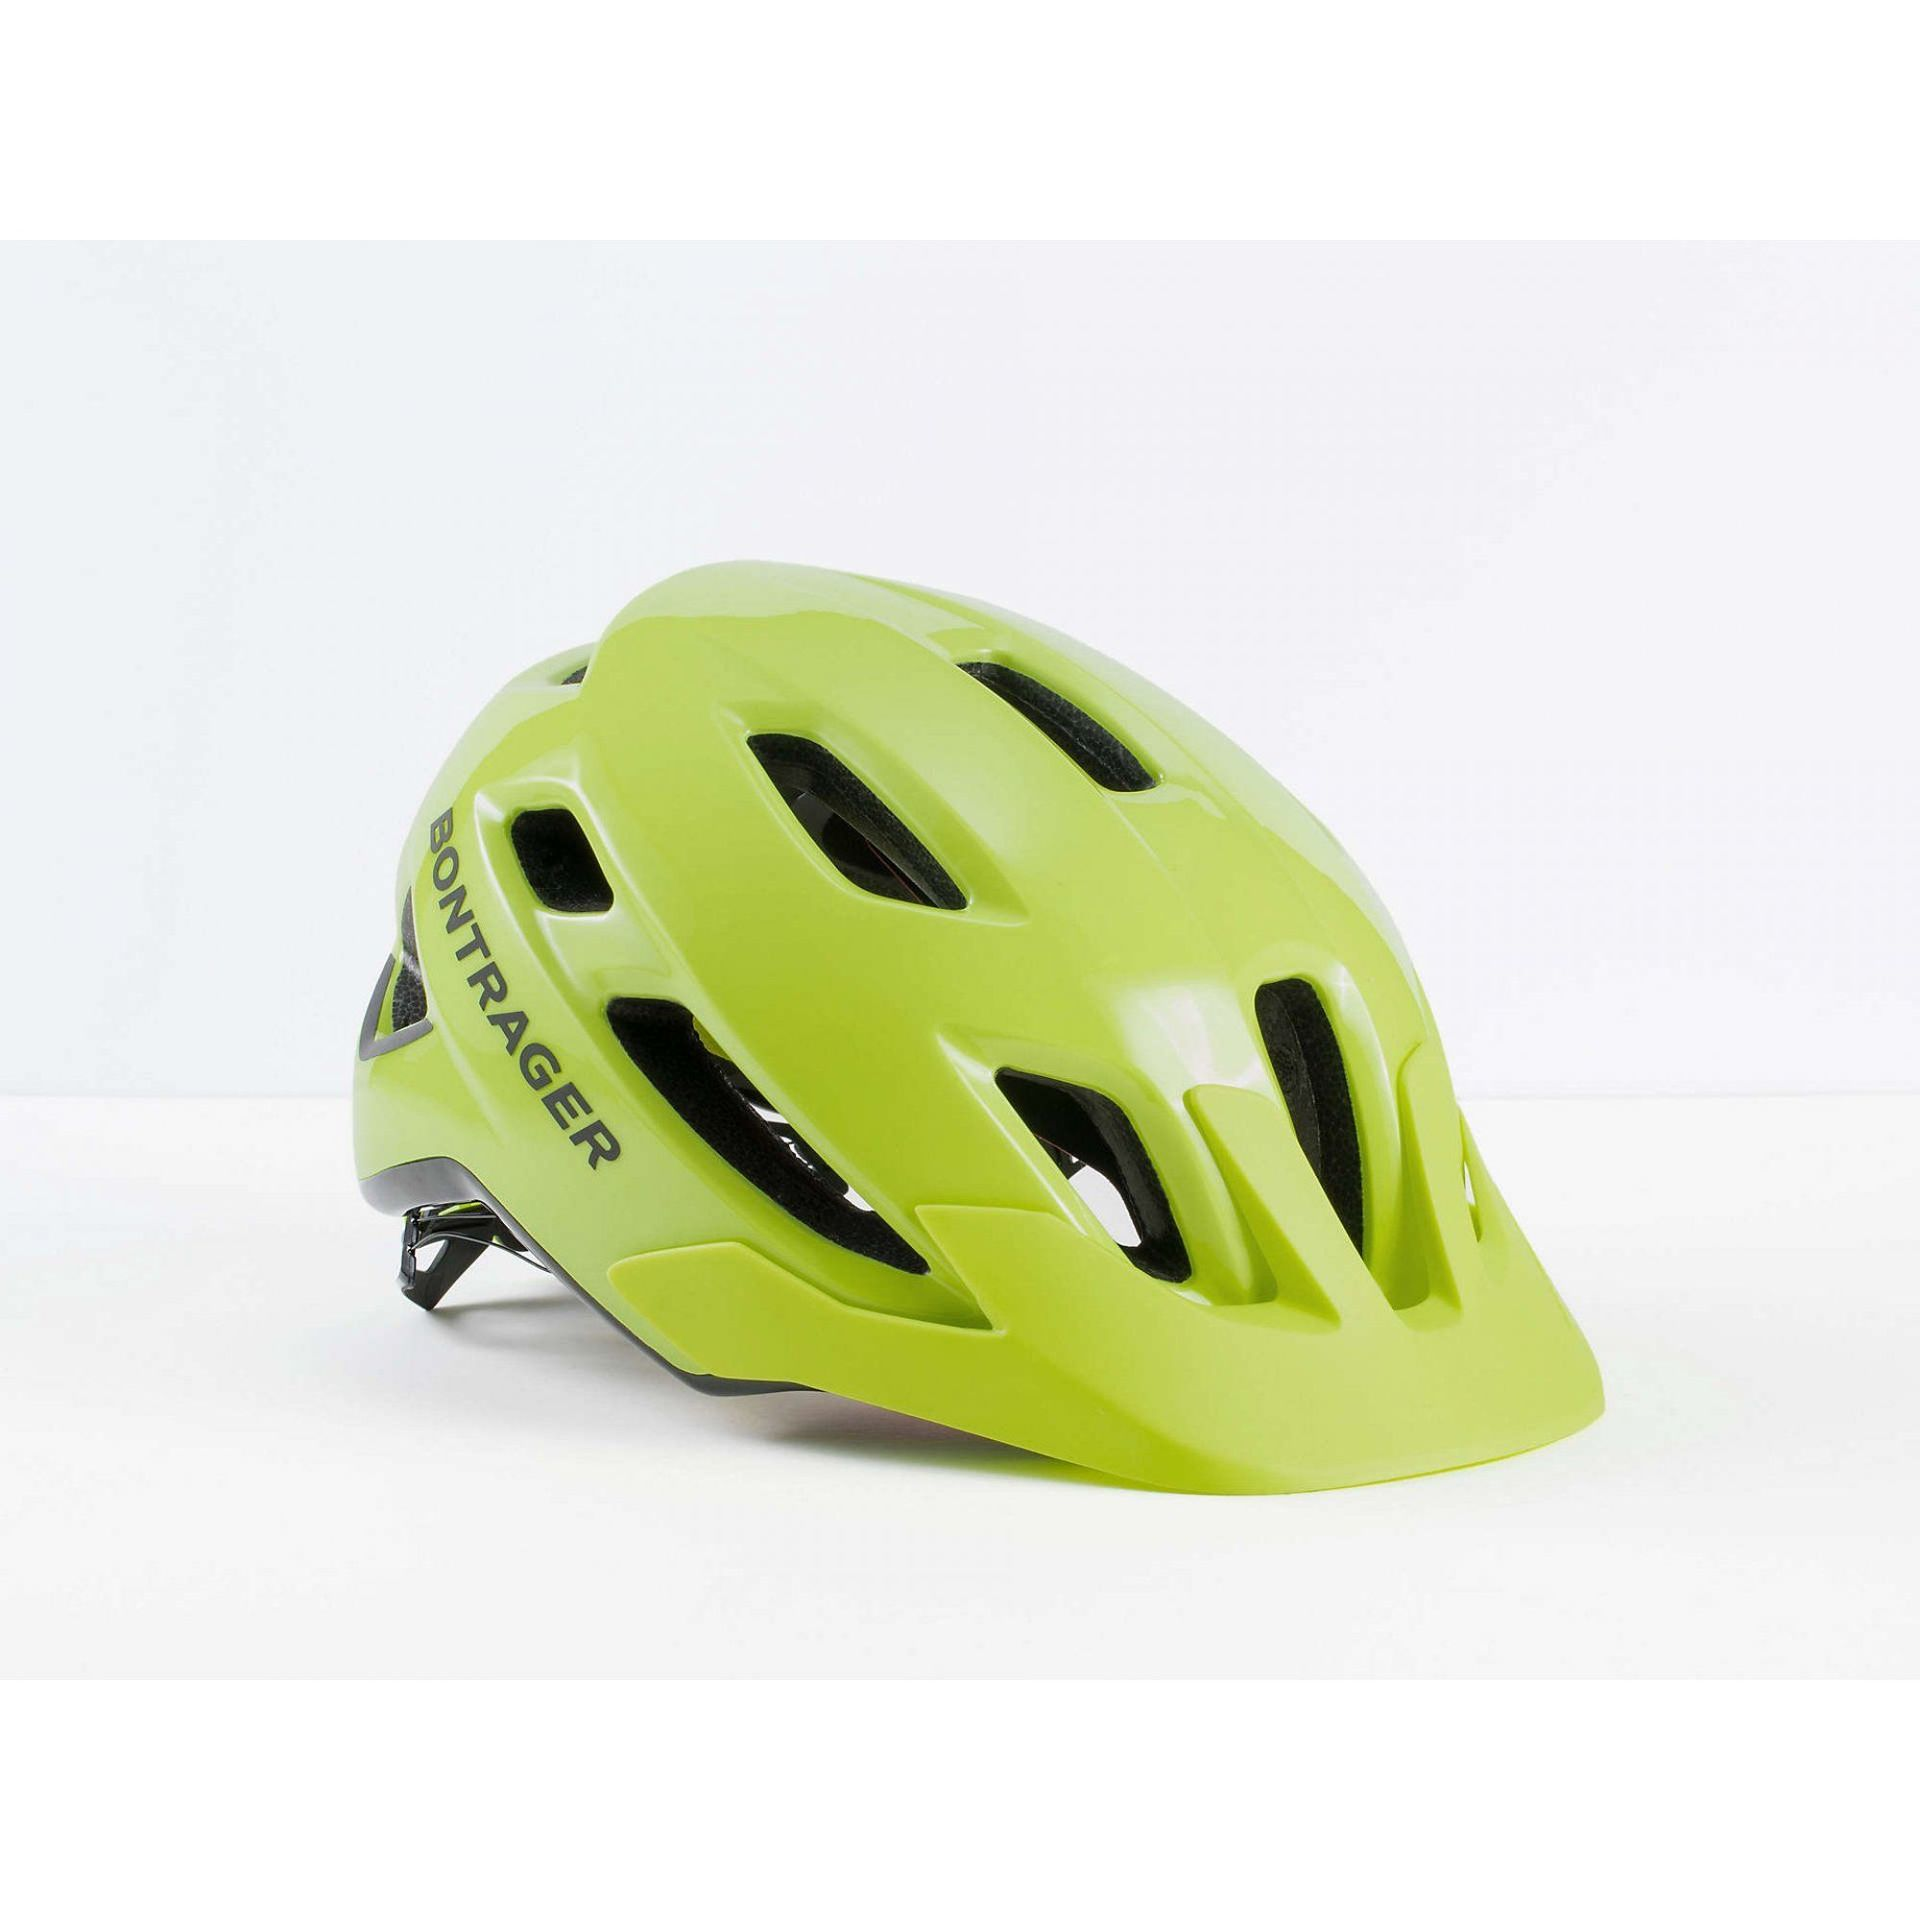 KASK ROWEROWY BONTRAGER QUANTUM MIPS VISIBILITY YELLOW